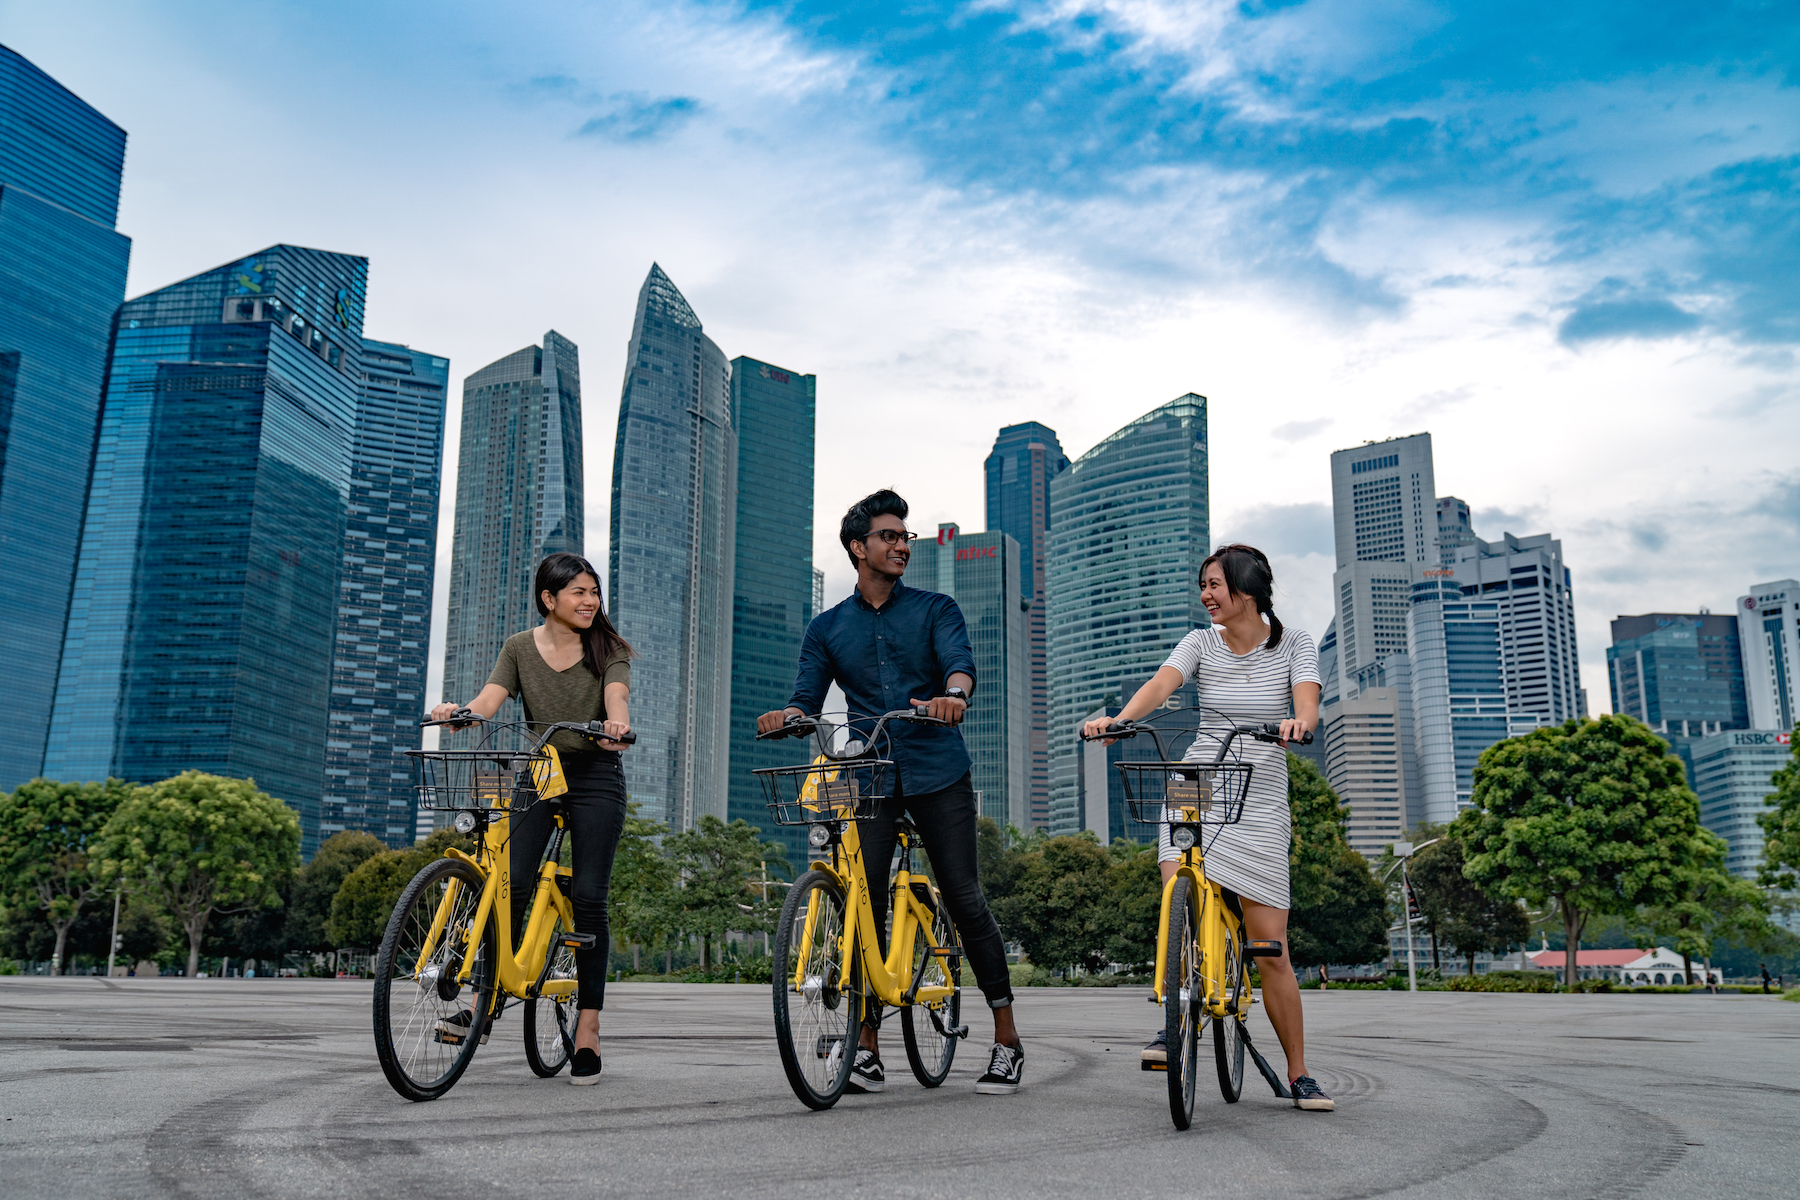 ofo Singapore - Commercial Outdoor Shoot